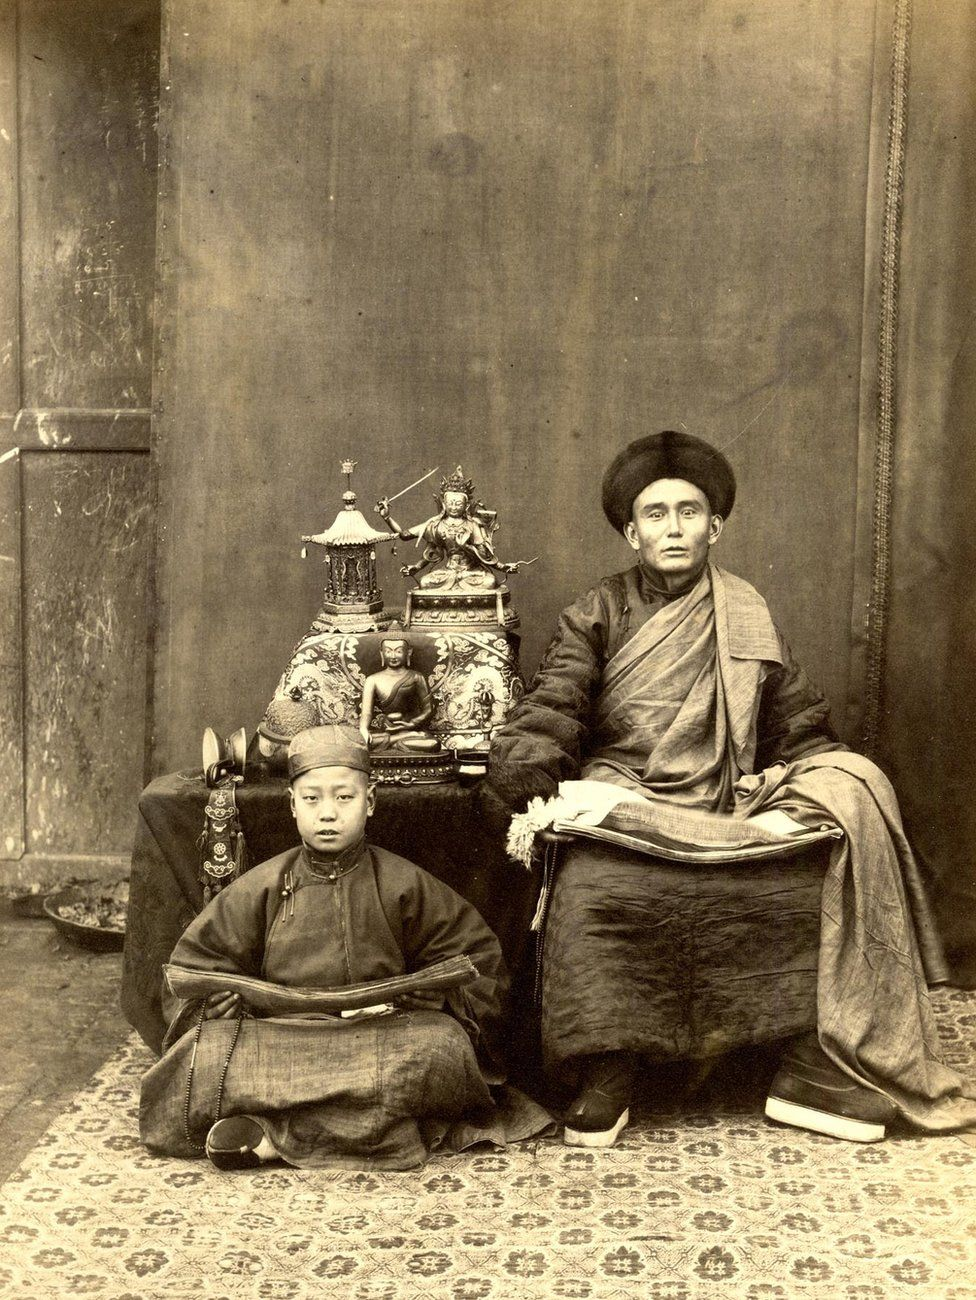 Thomas Child. No. 192 Mongolian Lama. 1870s. Albumen silver print.